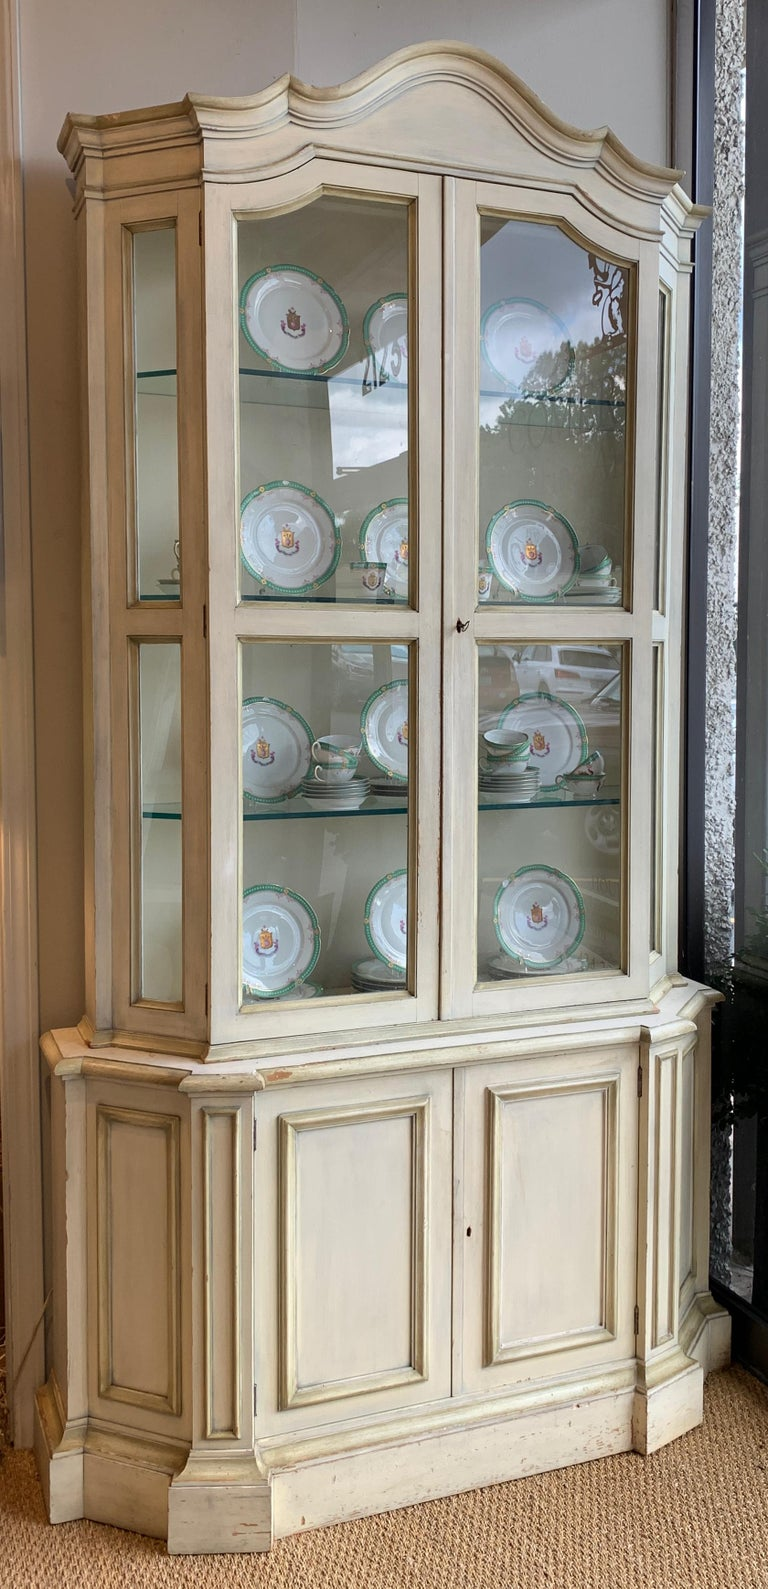 A tall and elegant mid-20th century. Paint decorated china or display cabinet with carved bonnet top and two glass doors revealing three substantial glass shelves above two cabinet doors offering additional storage.